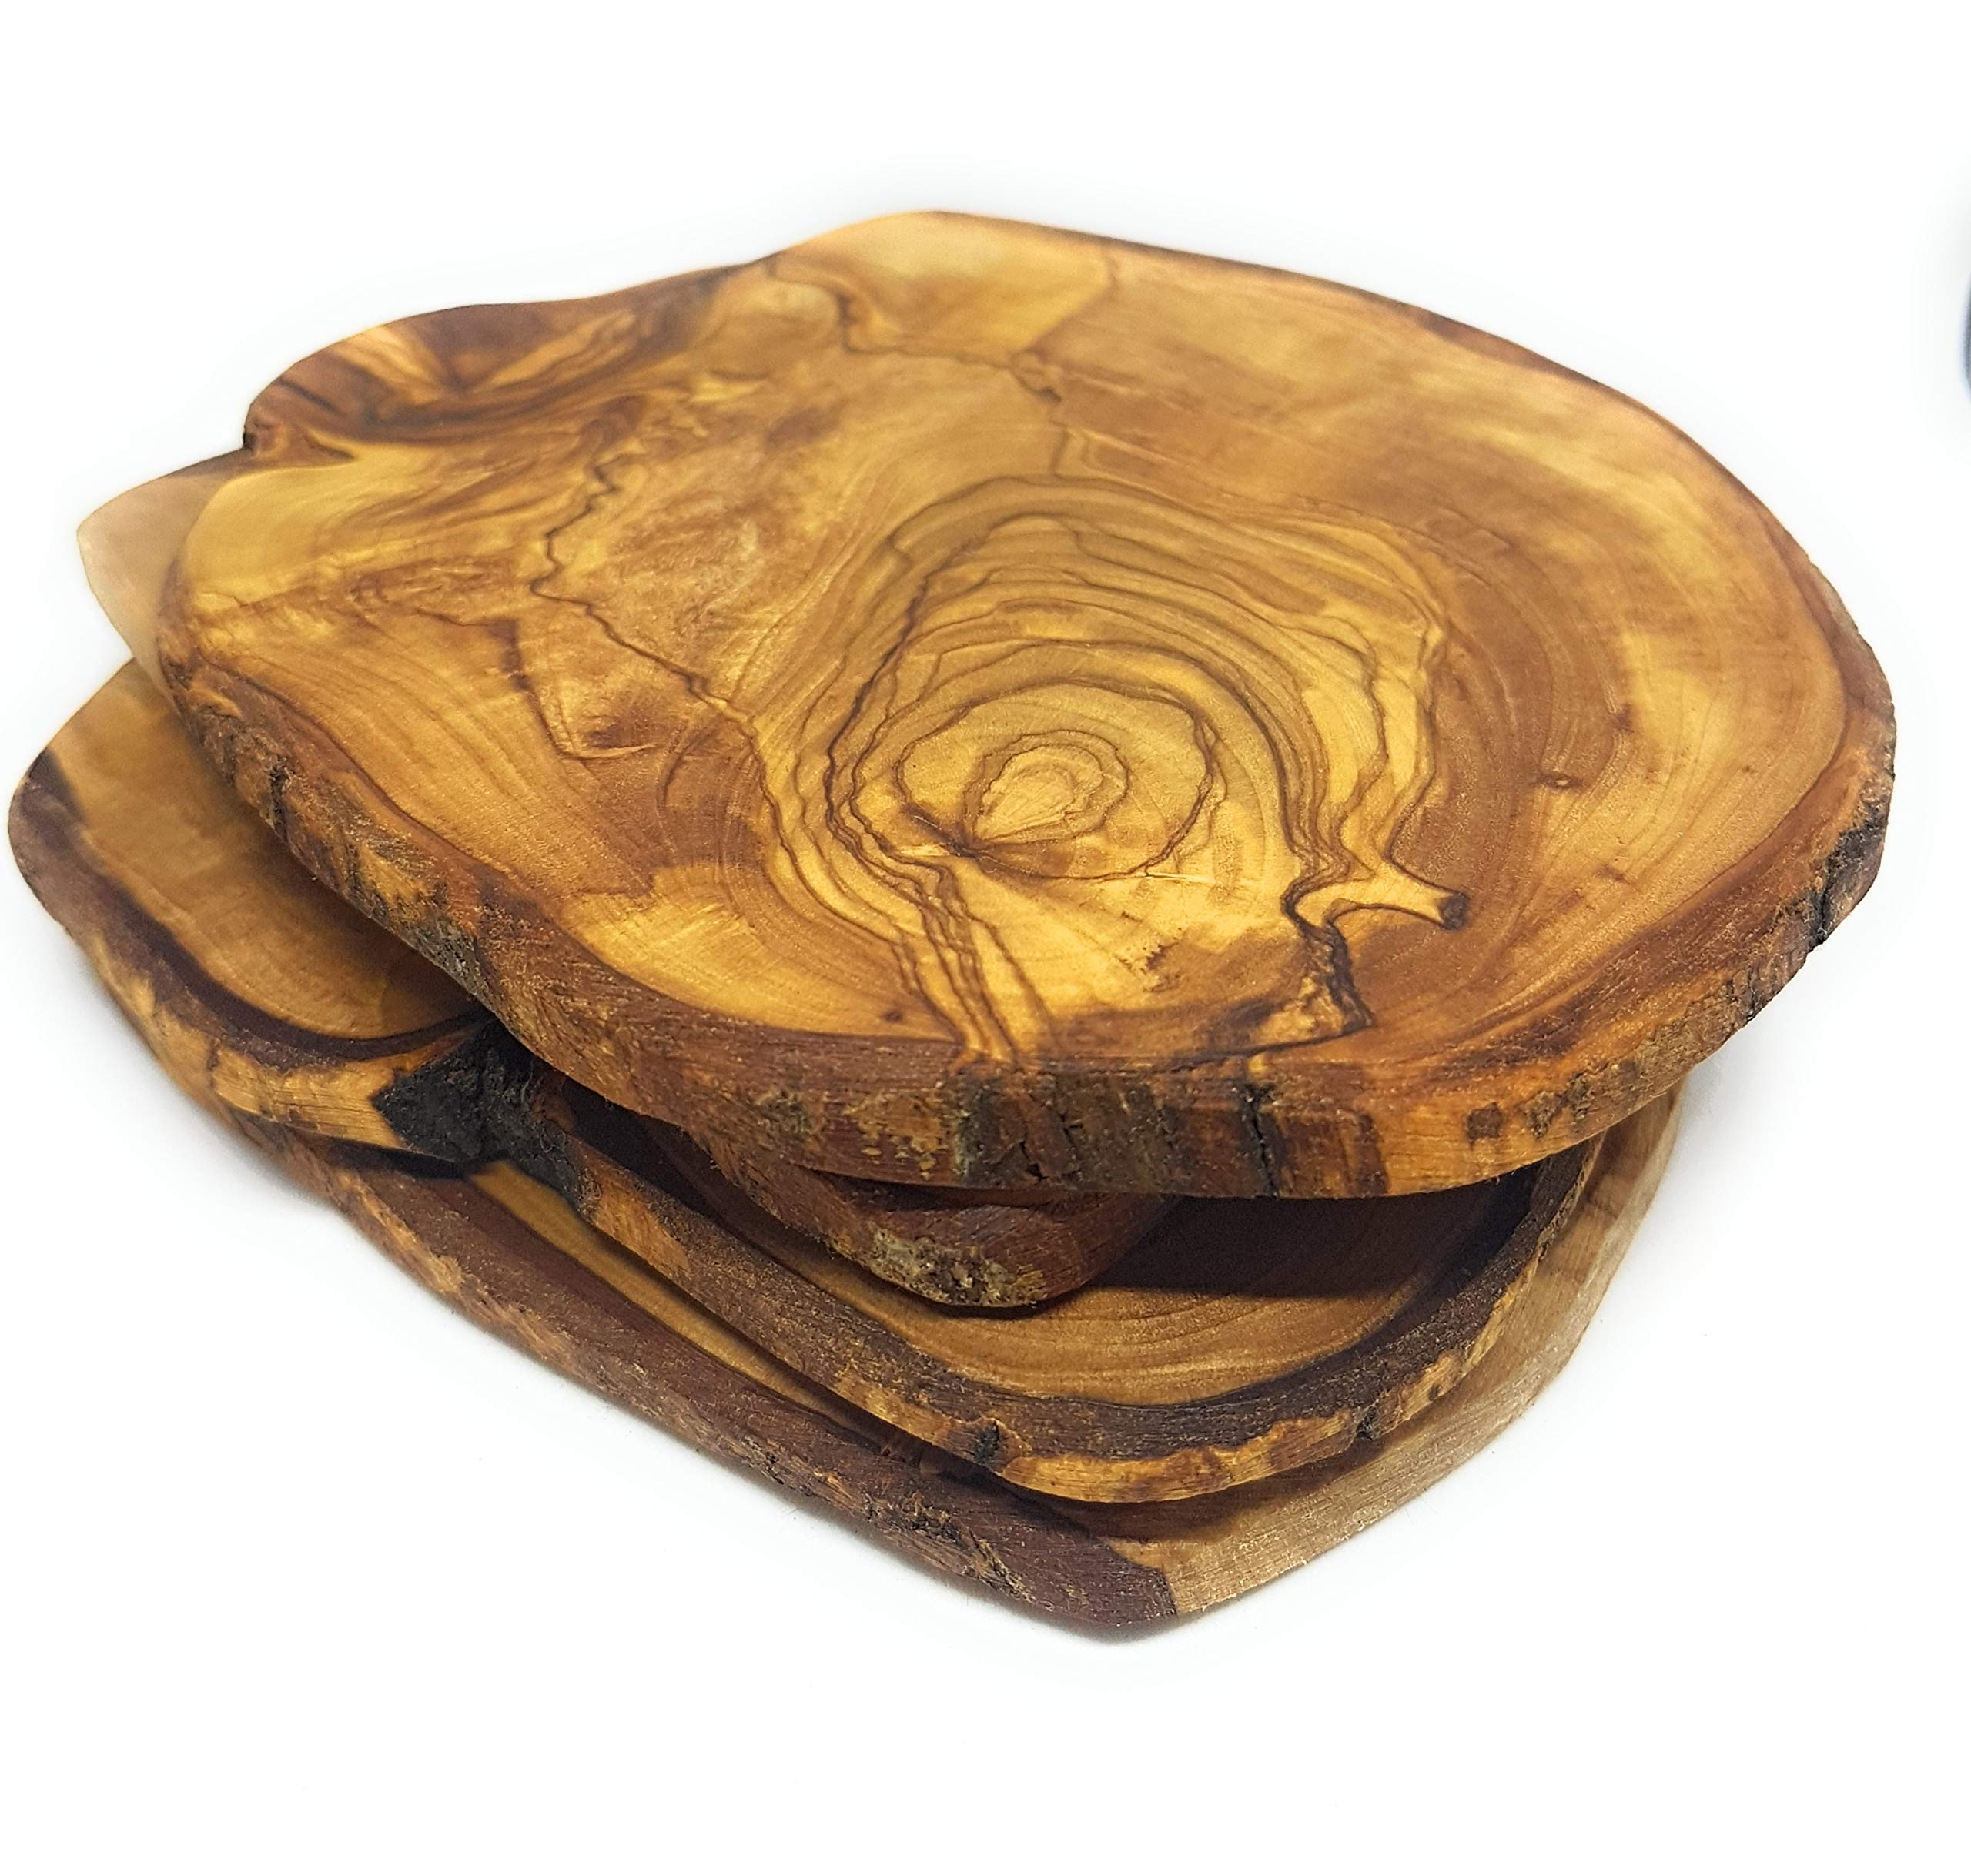 Olive Wood Coasters 100% Natural & Organic - Set of 4 - Handmade - With a Special Gift Box